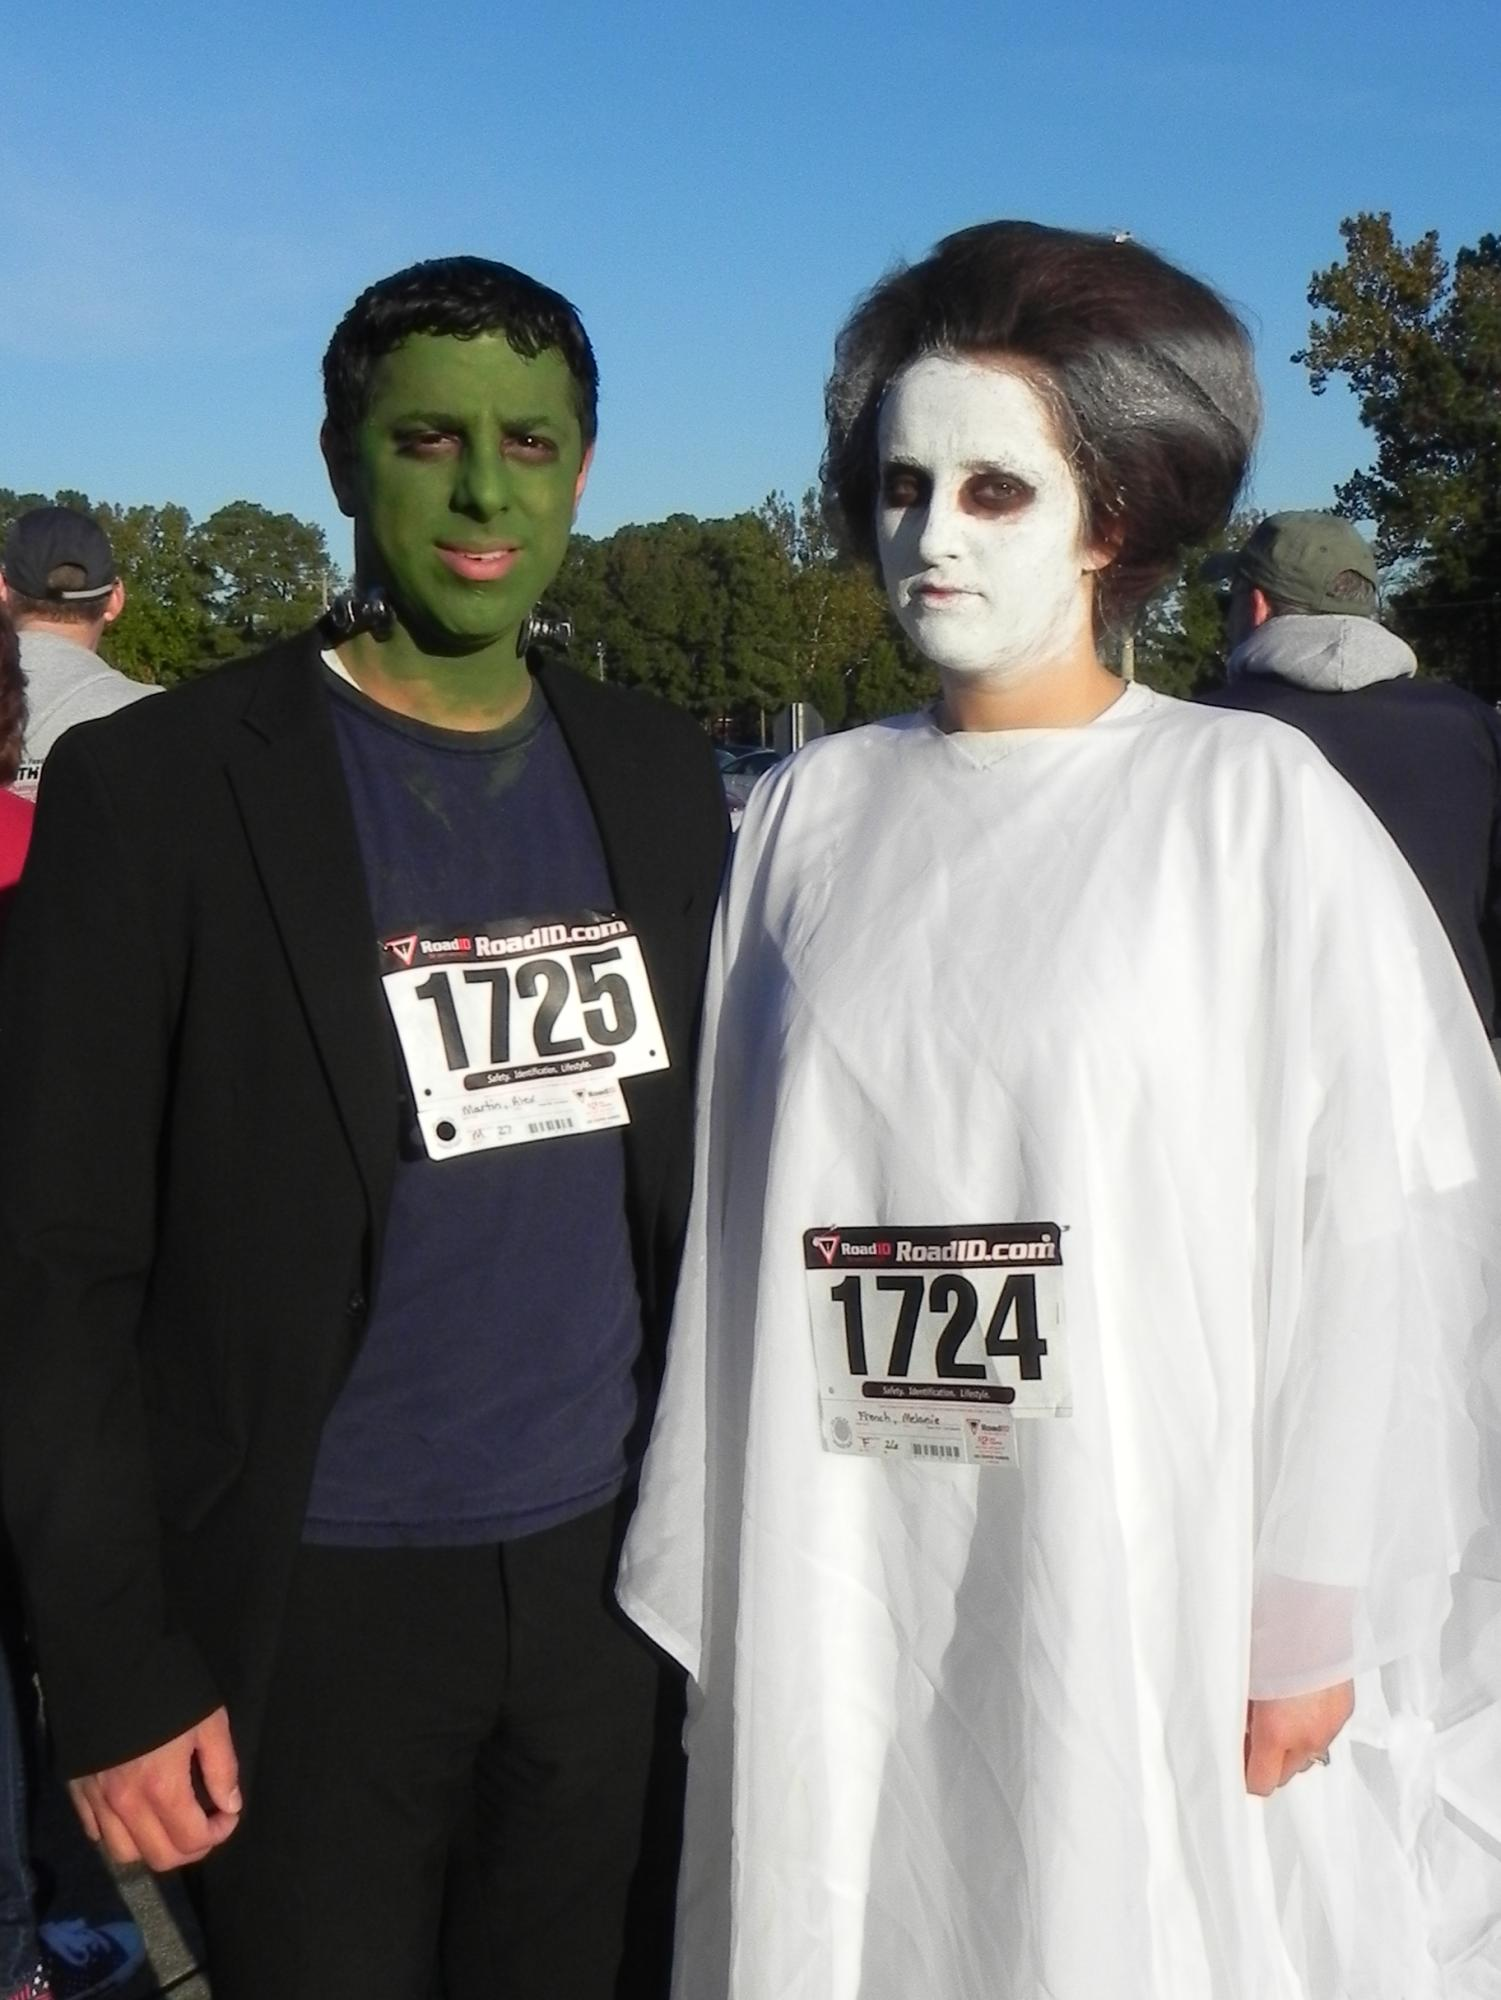 Runners_in_costume_Oct_31__2015.JPG